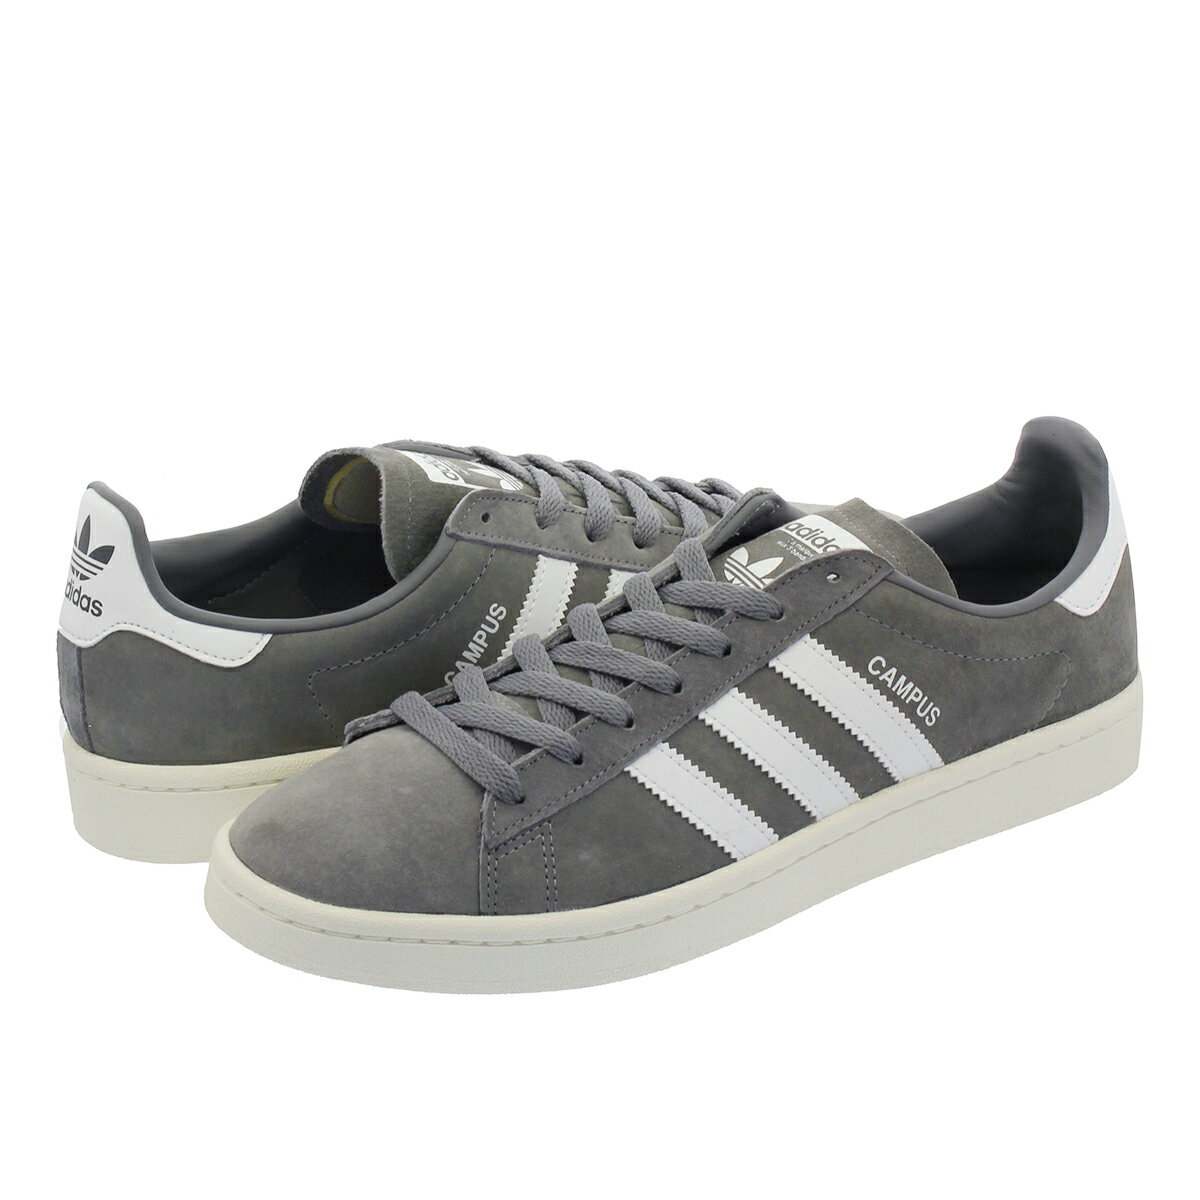 adidas CAMPUS 【adidas Originals】 アディダス キャンパス GREY/RUNNING WHITE/CHALK WHITE